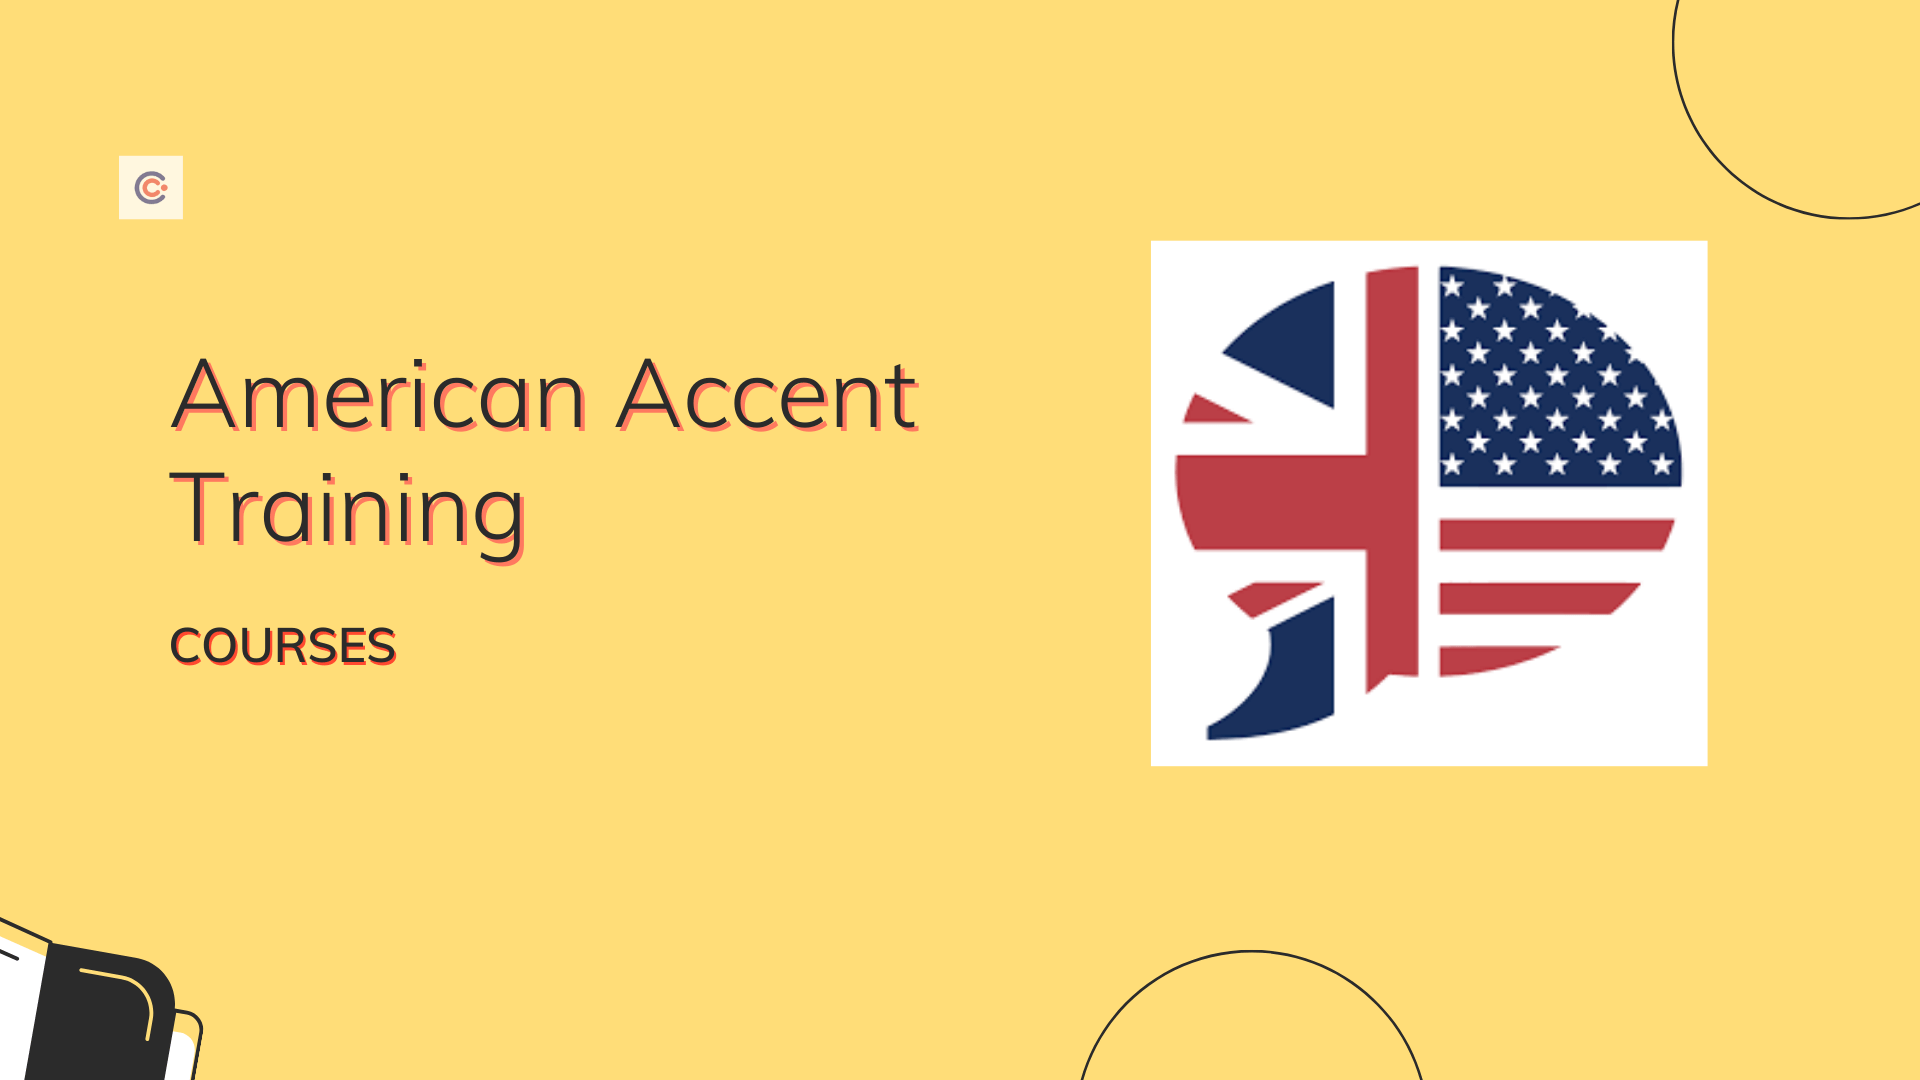 5 Best American Accent Training Courses - Learn American Accent Online